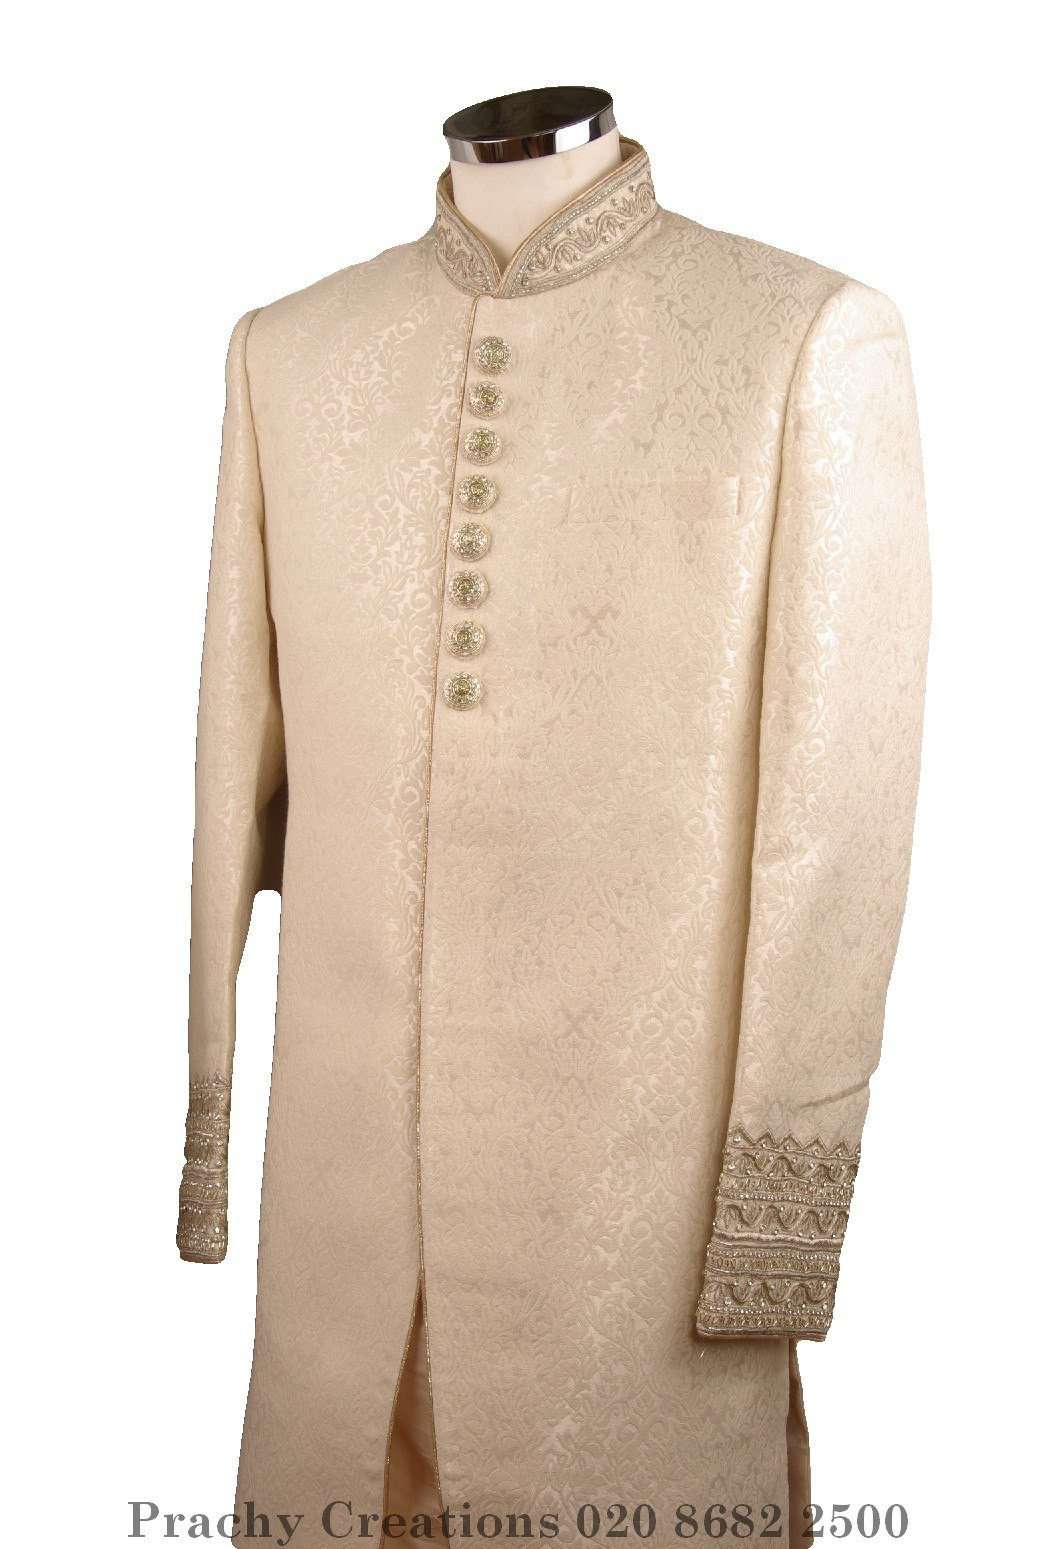 SW 6038 - Cream Brocade short Sherwani - ra 0616 - Prachy Creations